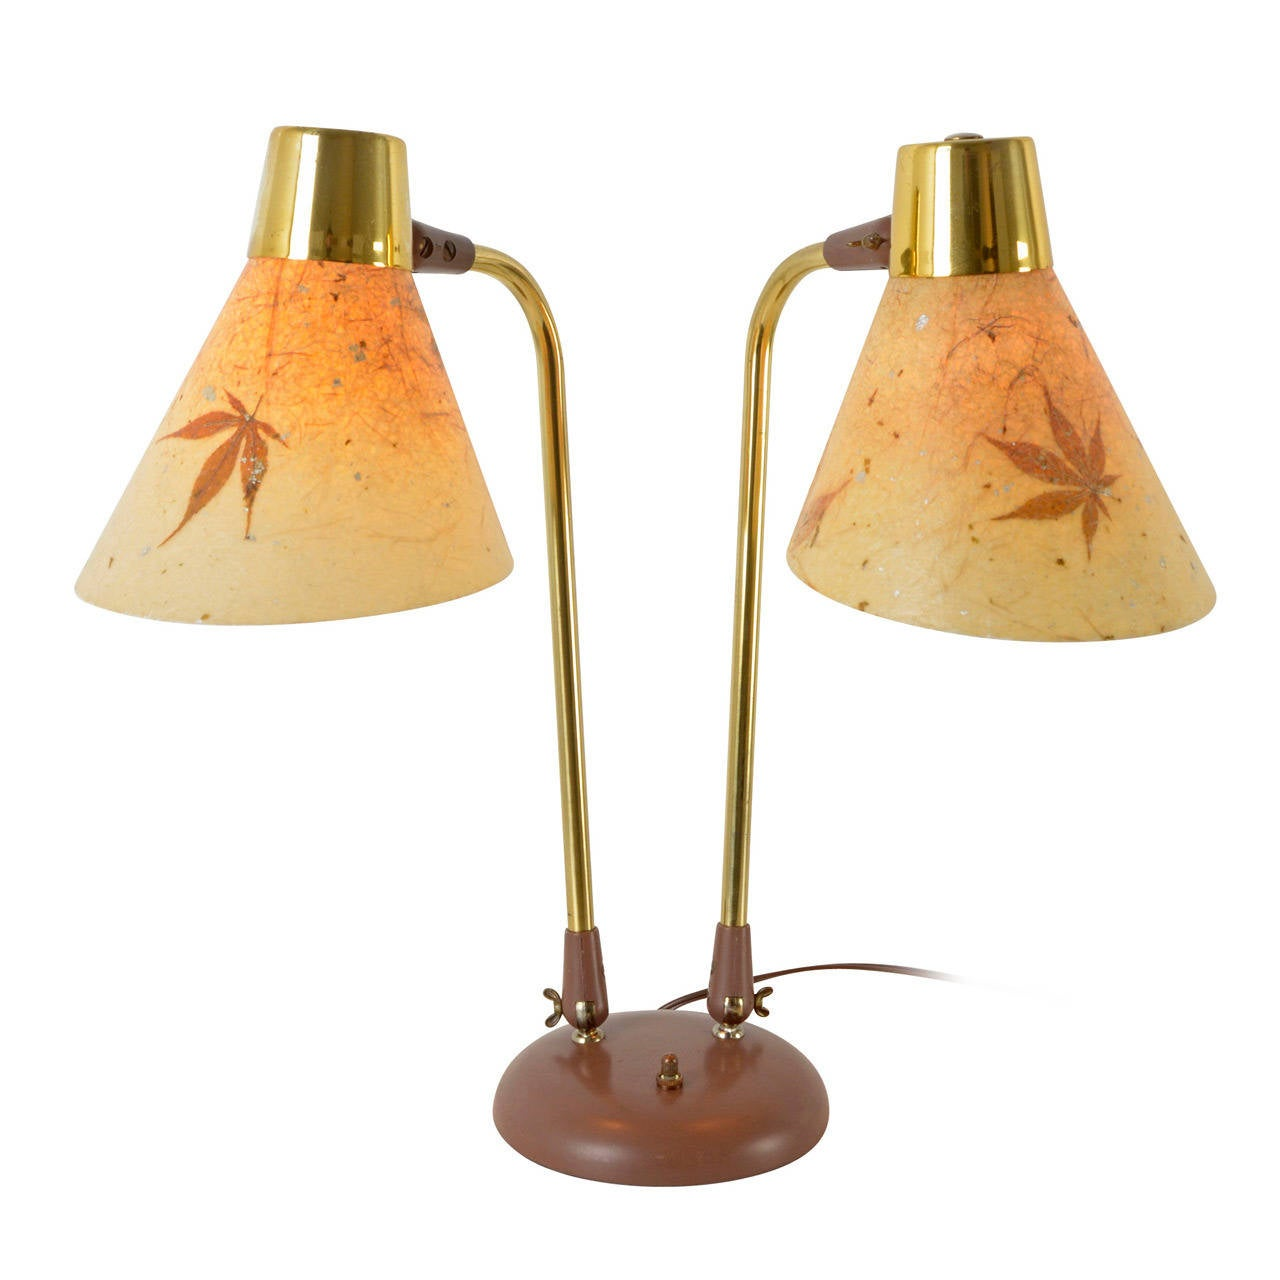 Mid century natural table lamp with maple leaf shades circa 1965 mid century natural table lamp with maple leaf shades circa 1965 1 geotapseo Gallery